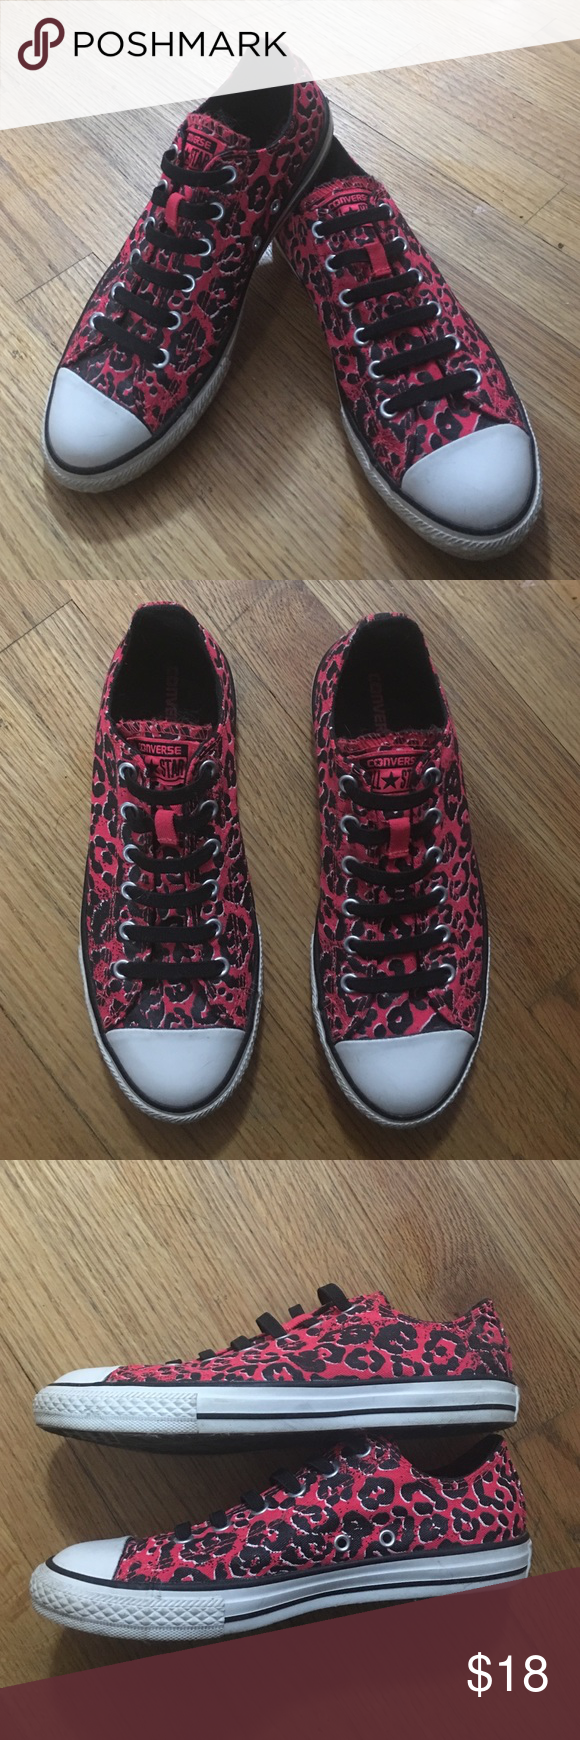 11fad3e42cdd Converse All Star pink and black no tie shoes